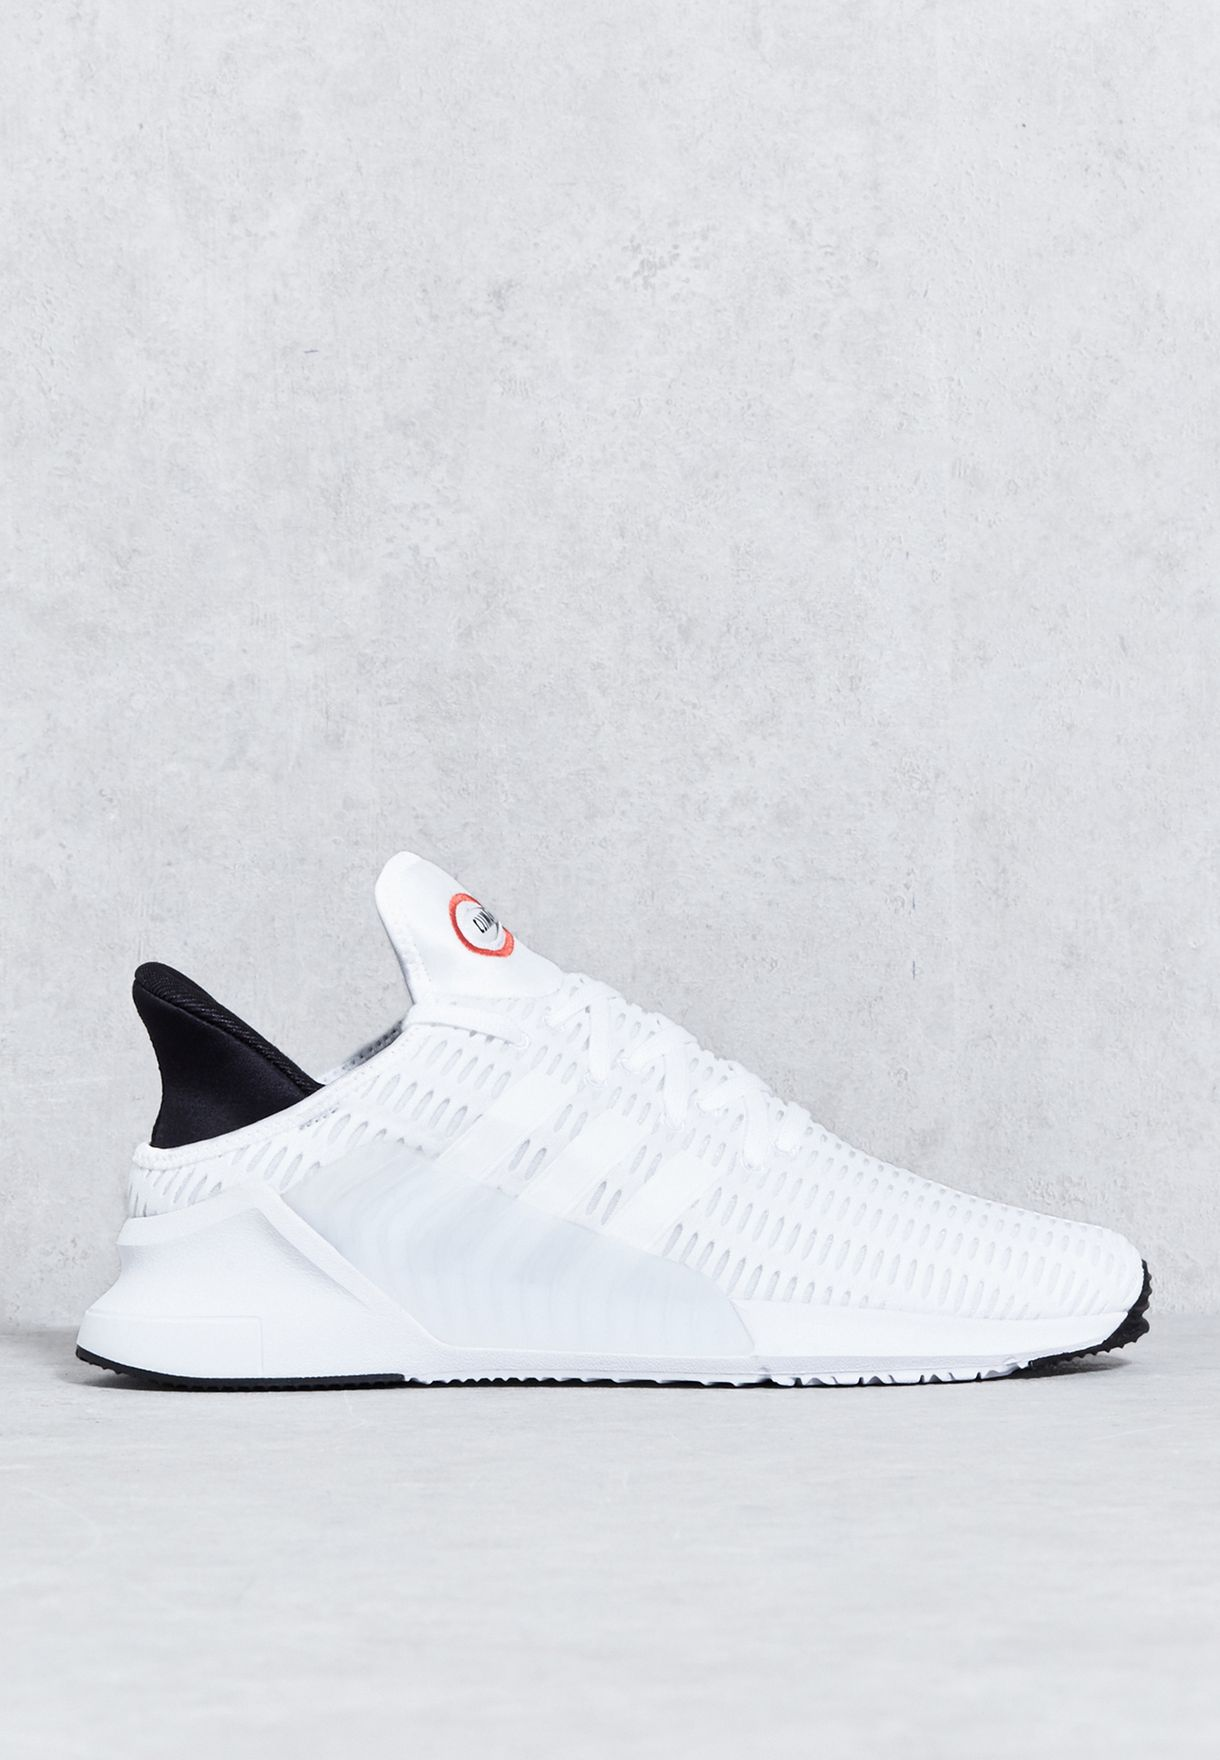 separation shoes 3acec 01a08 Shop adidas Originals white Climacool 0217 CG3344 for Men in Saudi -  AD478SH85ILE